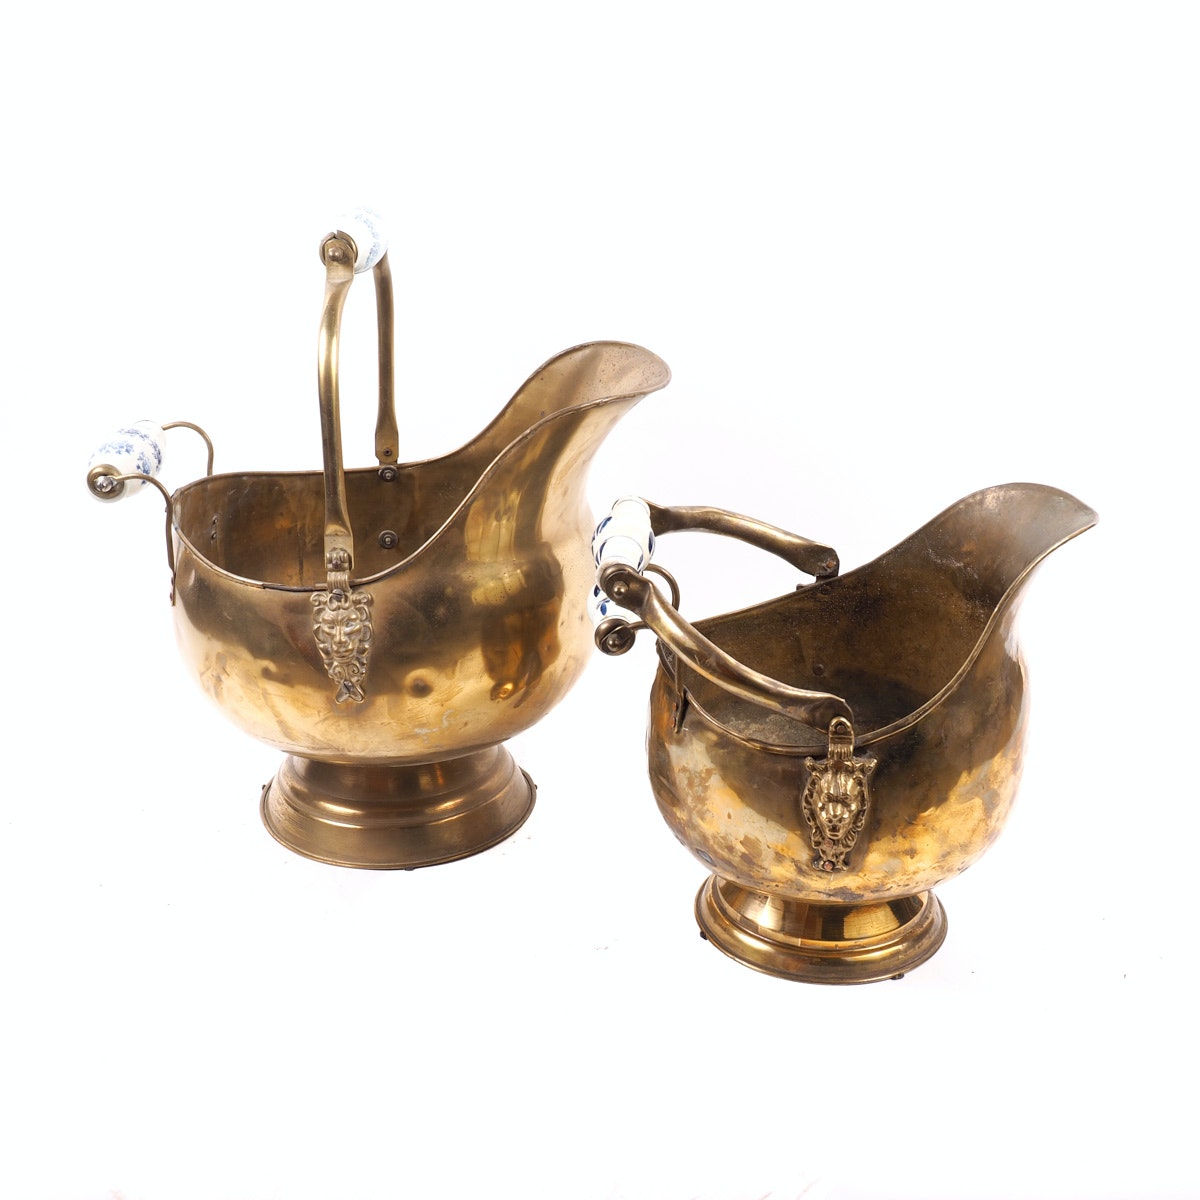 Two Large Brass Bath Pitchers with Porcelain Handles